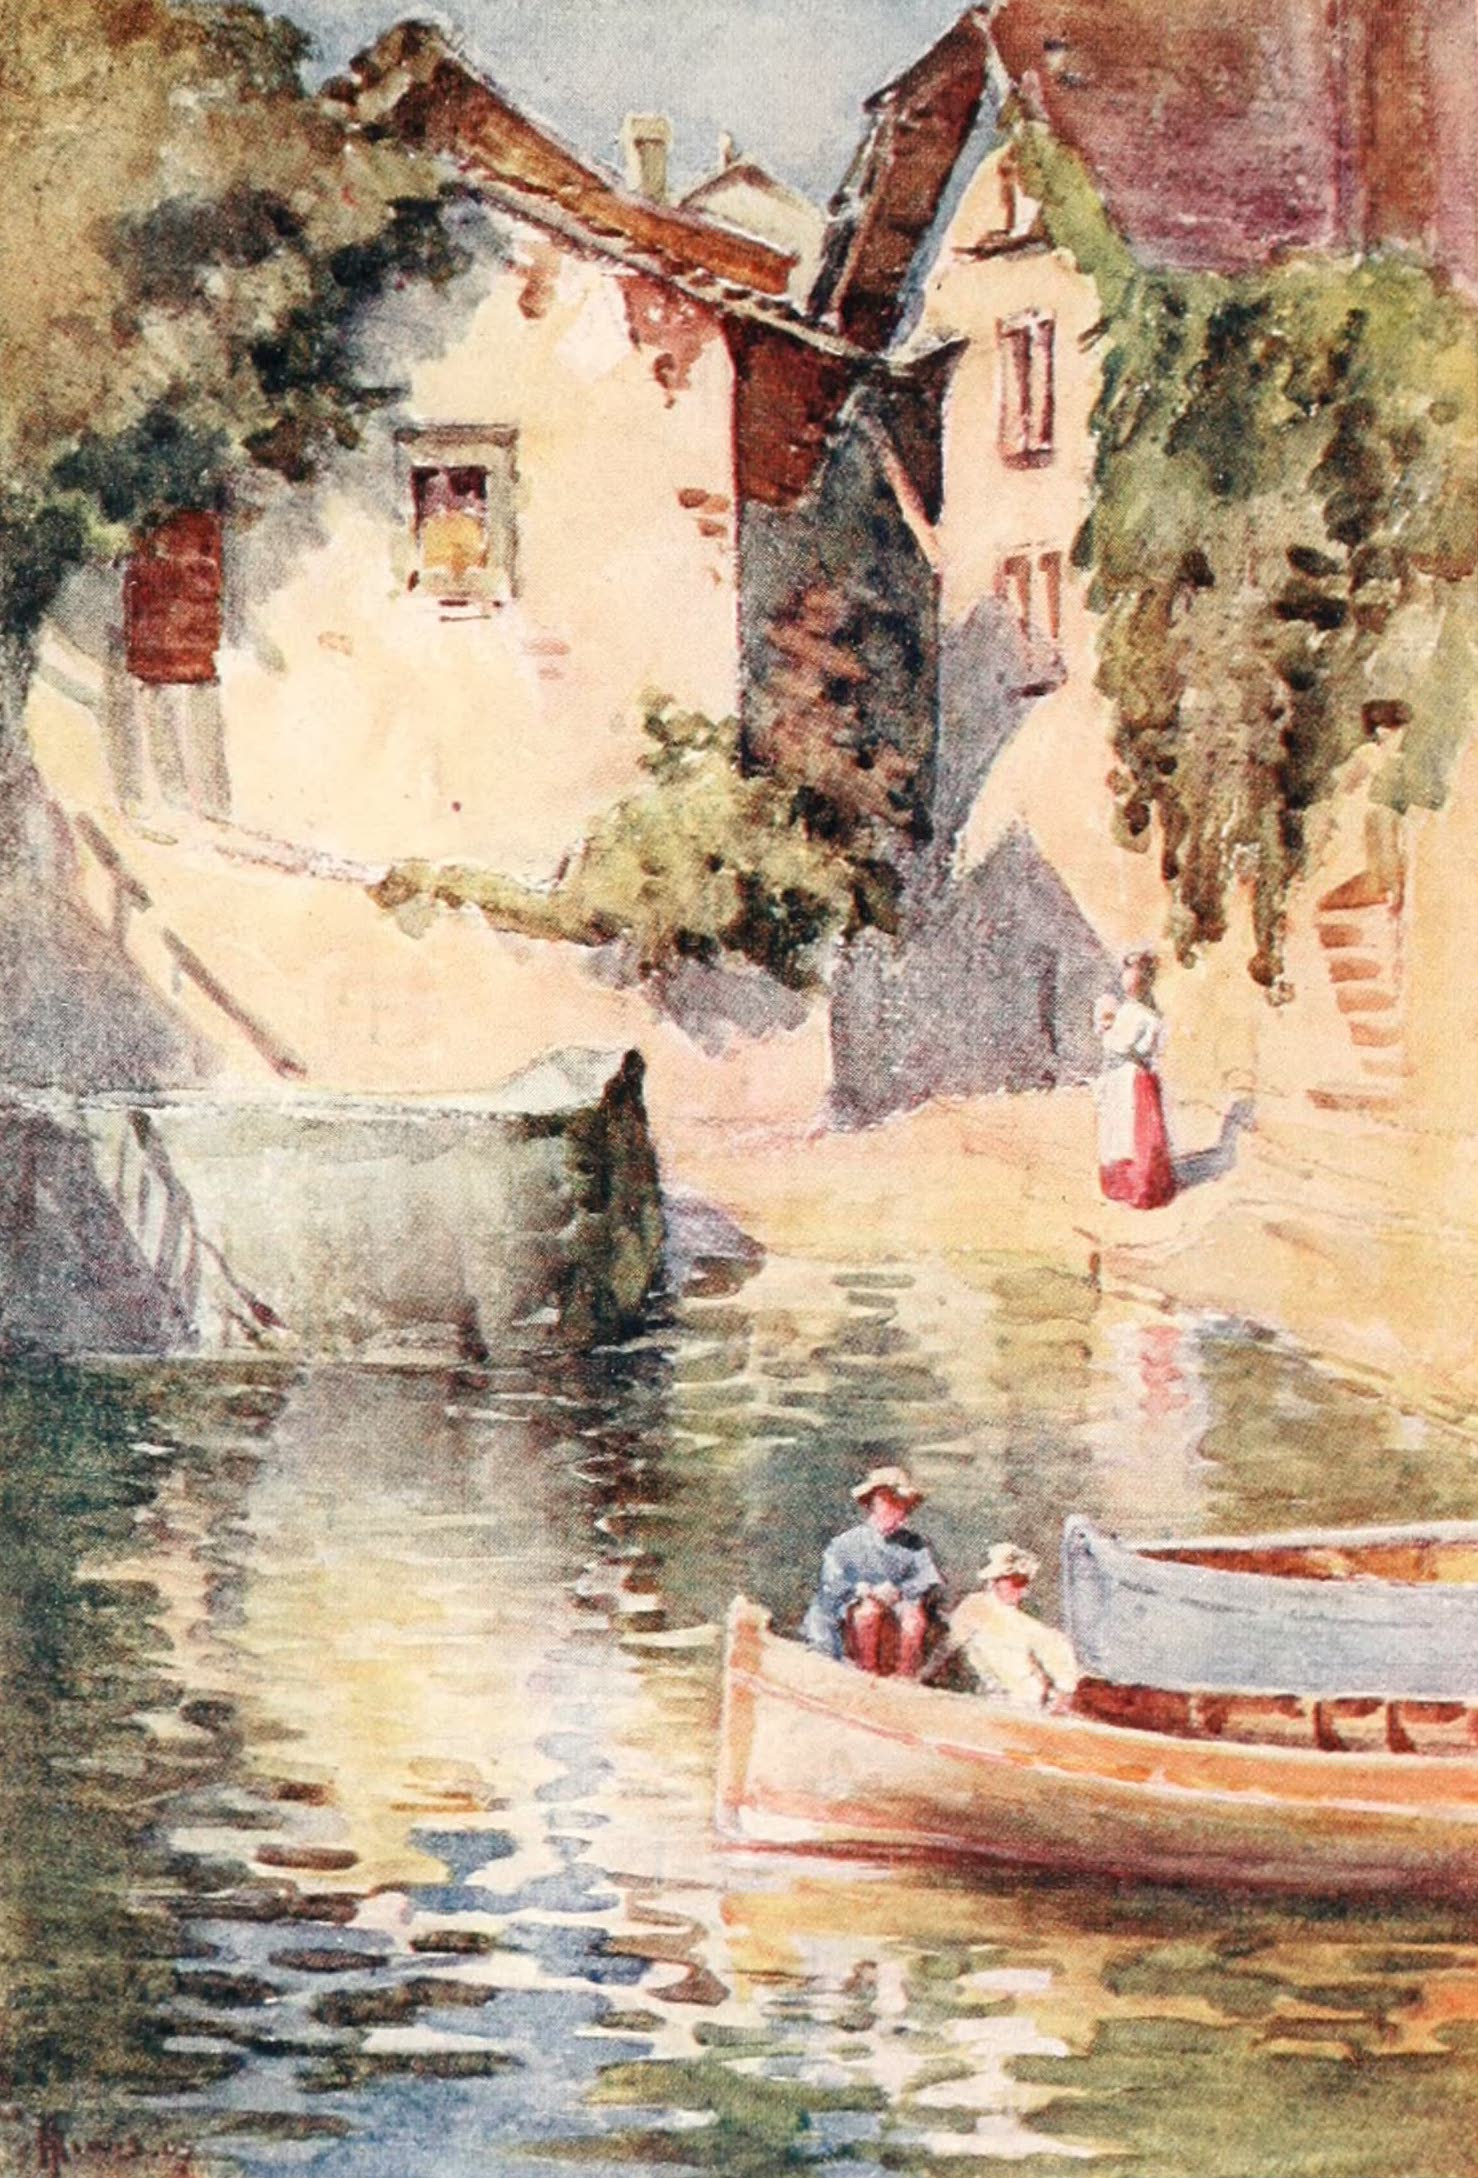 Montreux, Painted and Described - St. Saphorin (1908)